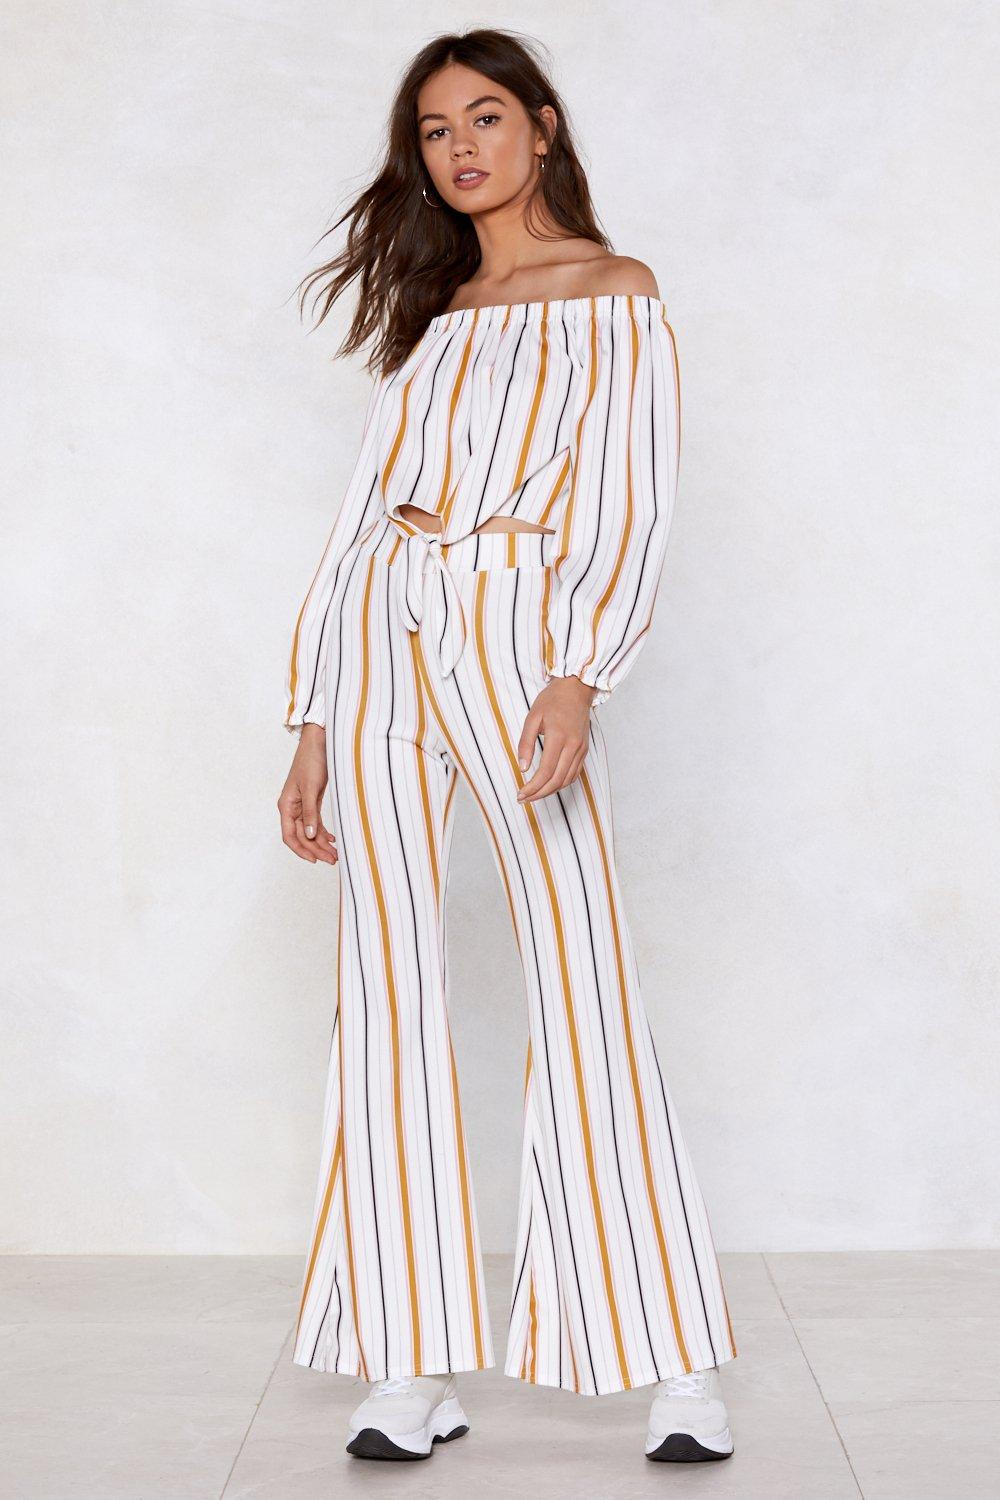 ca181948468eaa Keep It Parallel Off-the-Shoulder Top and Pants Set